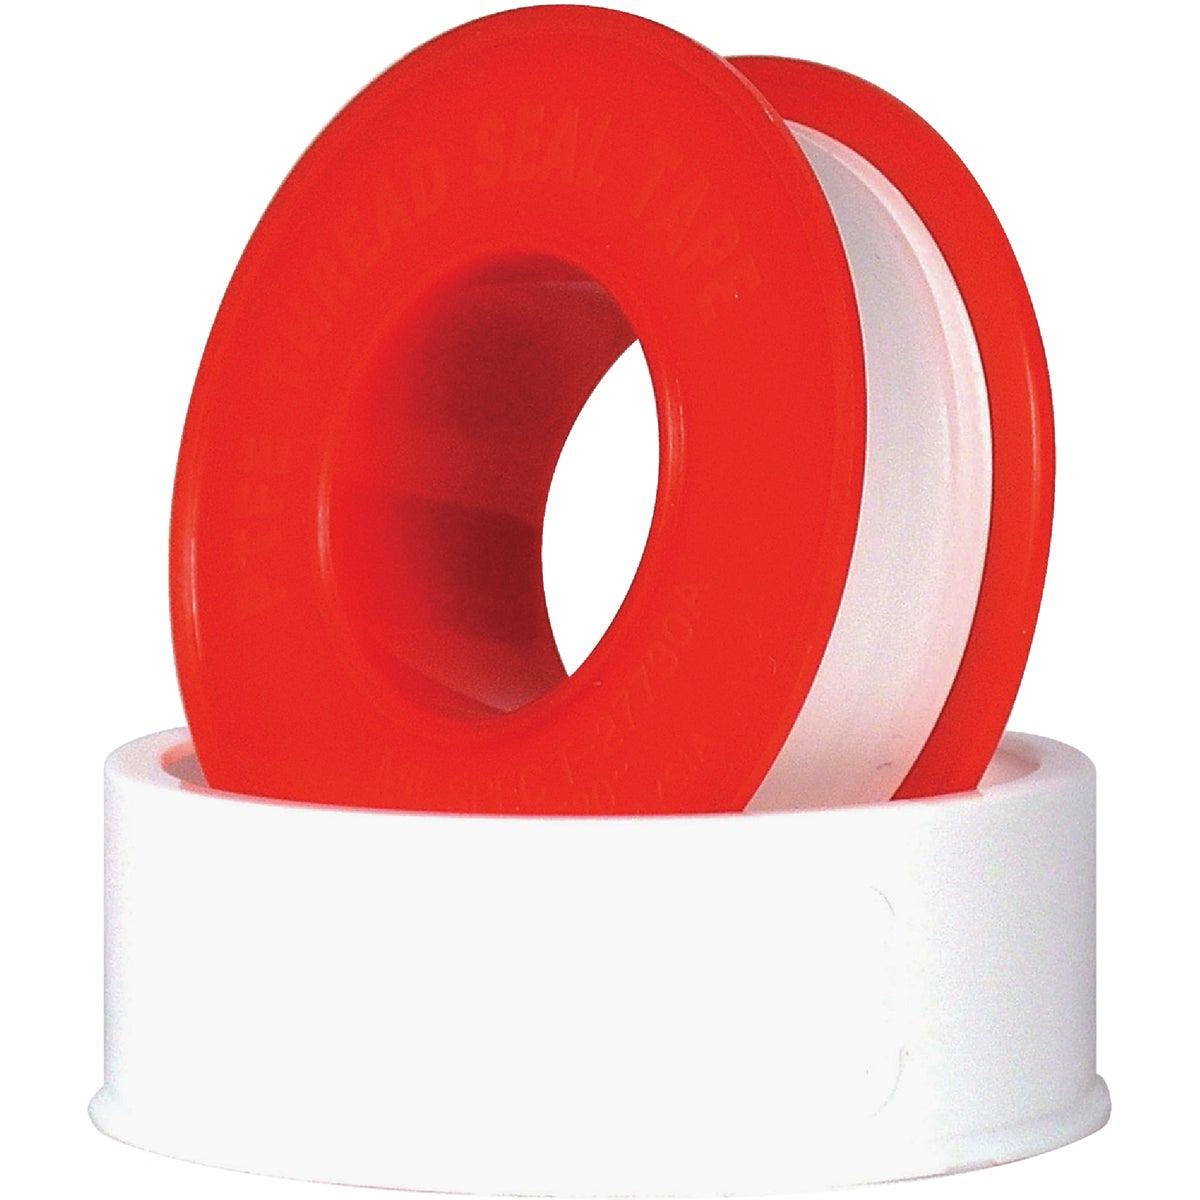 3/4X260 PTFE TAPE - 017210 by Wm H Harvey Co